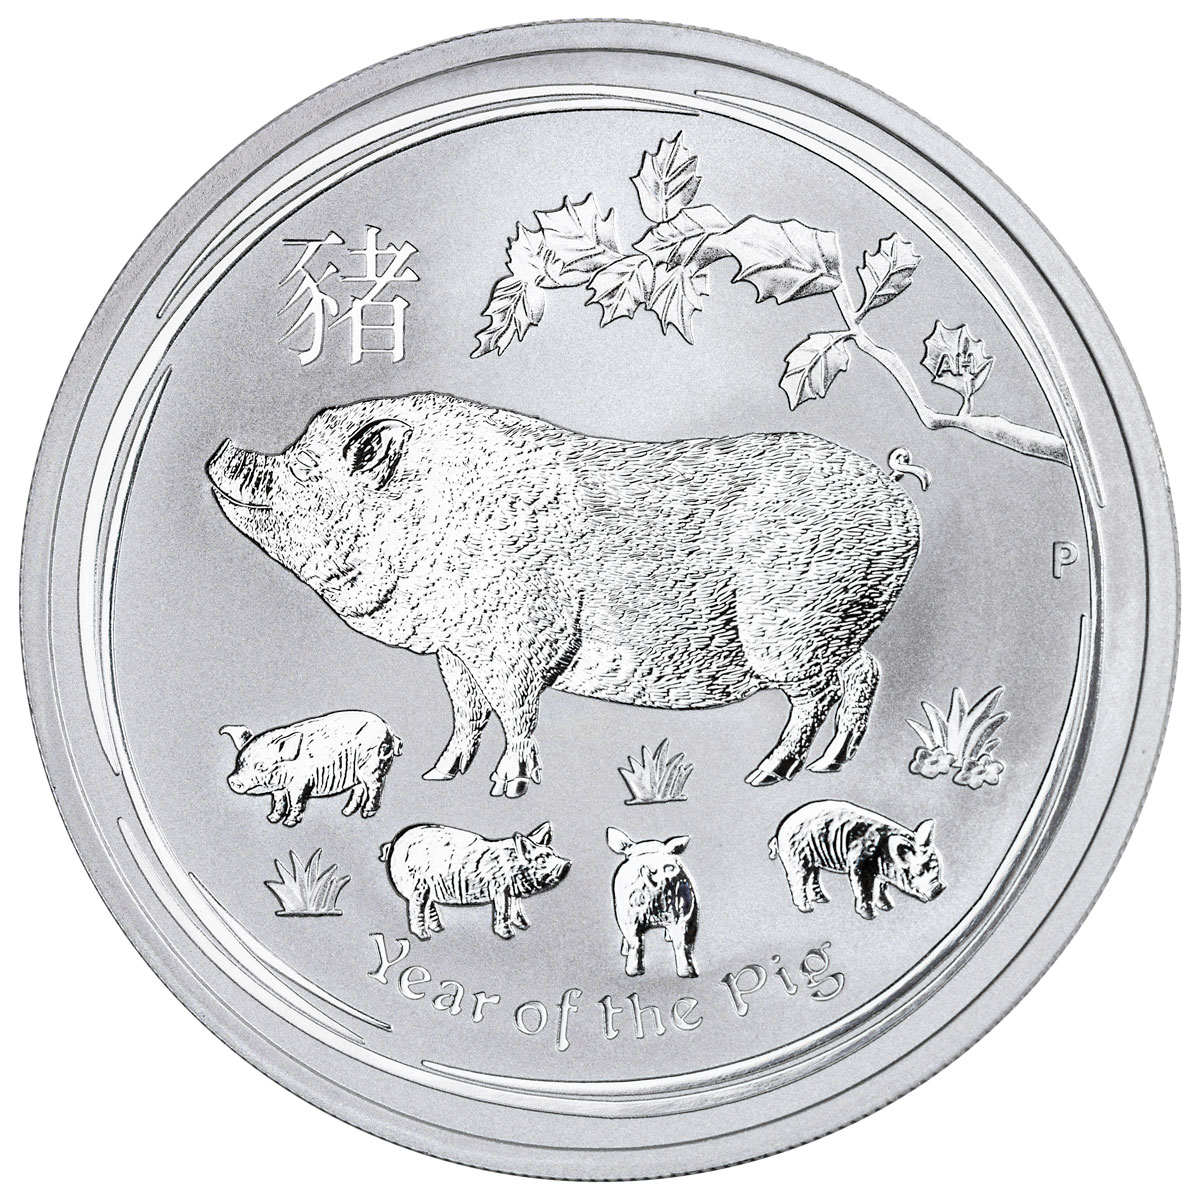 2019-P Australia Year of the Pig 1 oz Silver Lunar (Series 2) $1 Coin GEM BU